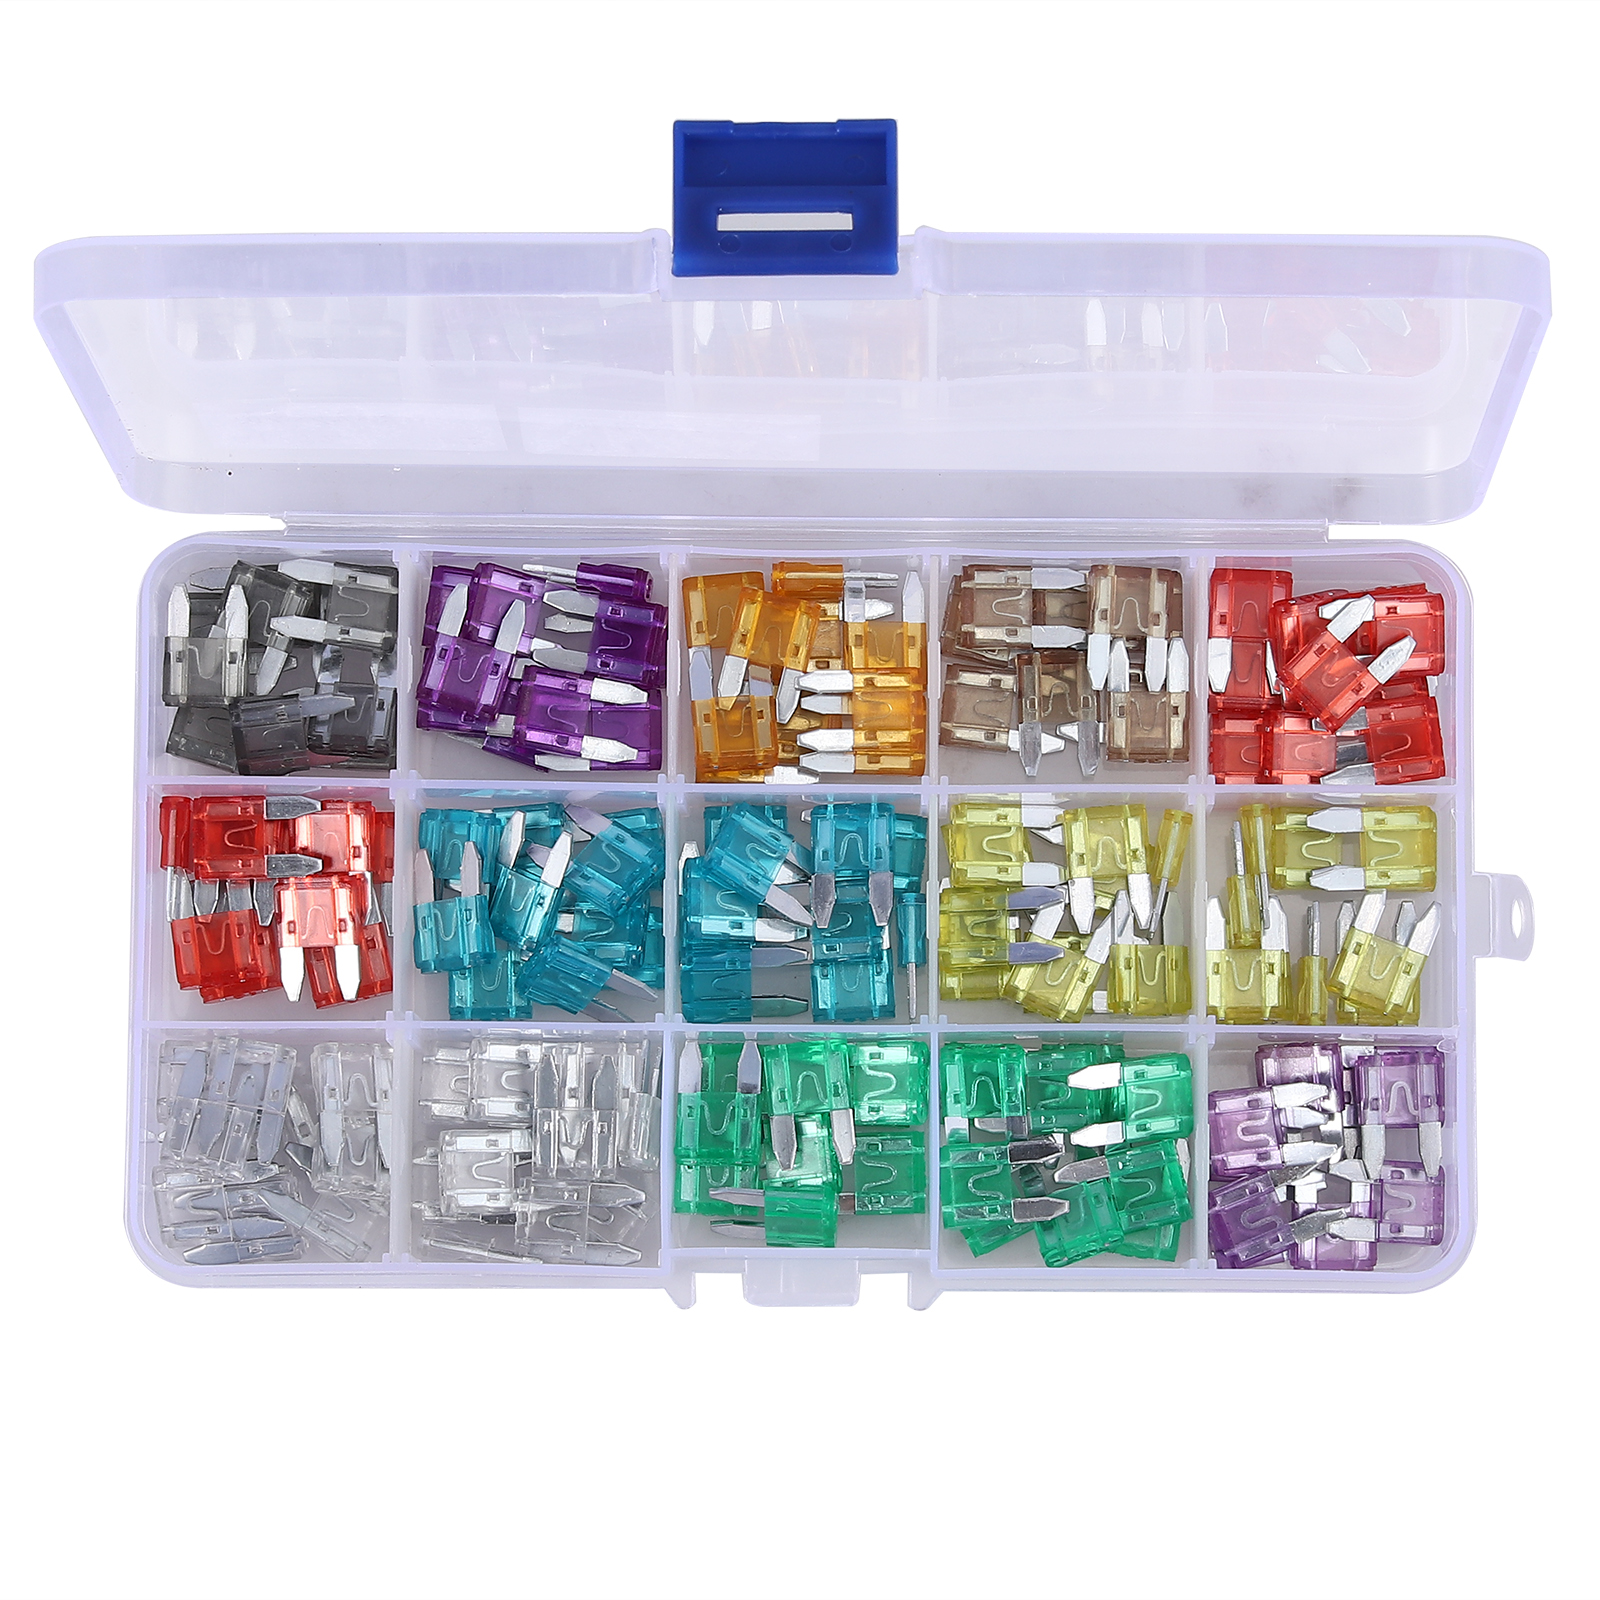 22 PACK FUSES WITH PULLER CAR FUSE CAR TRUCK SUV FUSE BOX IN STORAGE BOX NEW